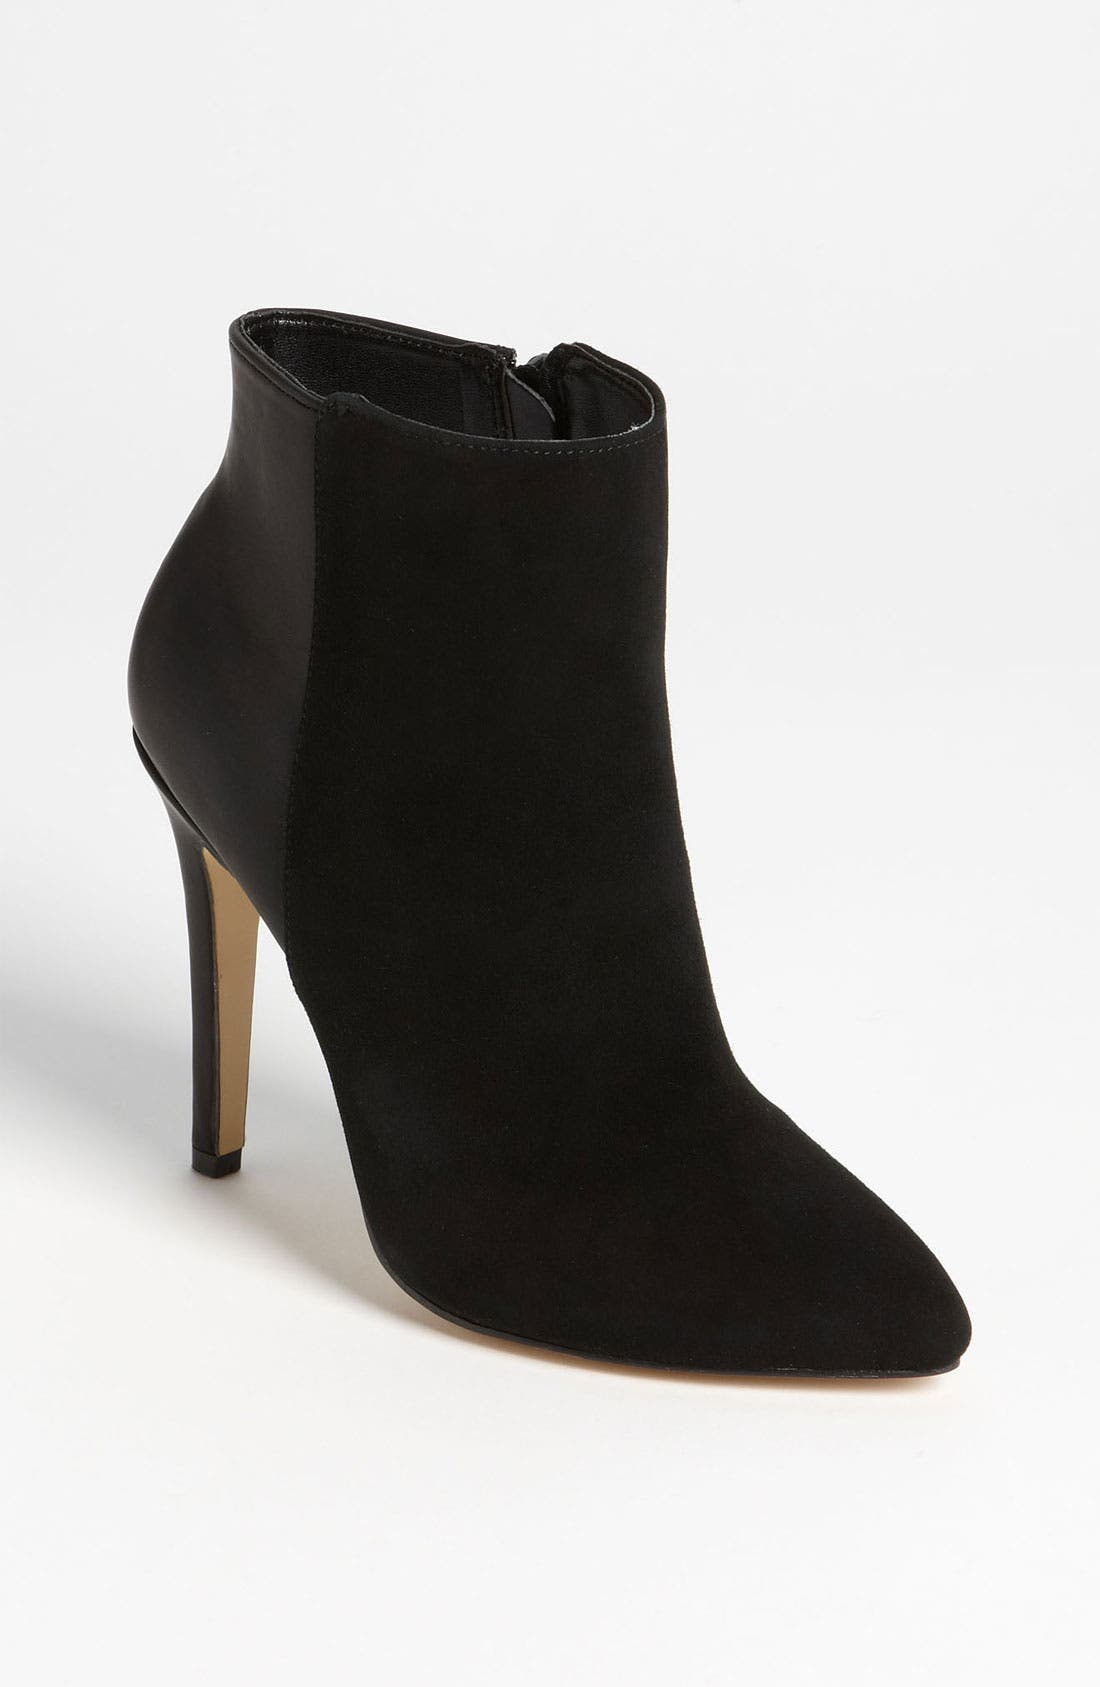 Main Image - Sole Society 'Aster' Bootie